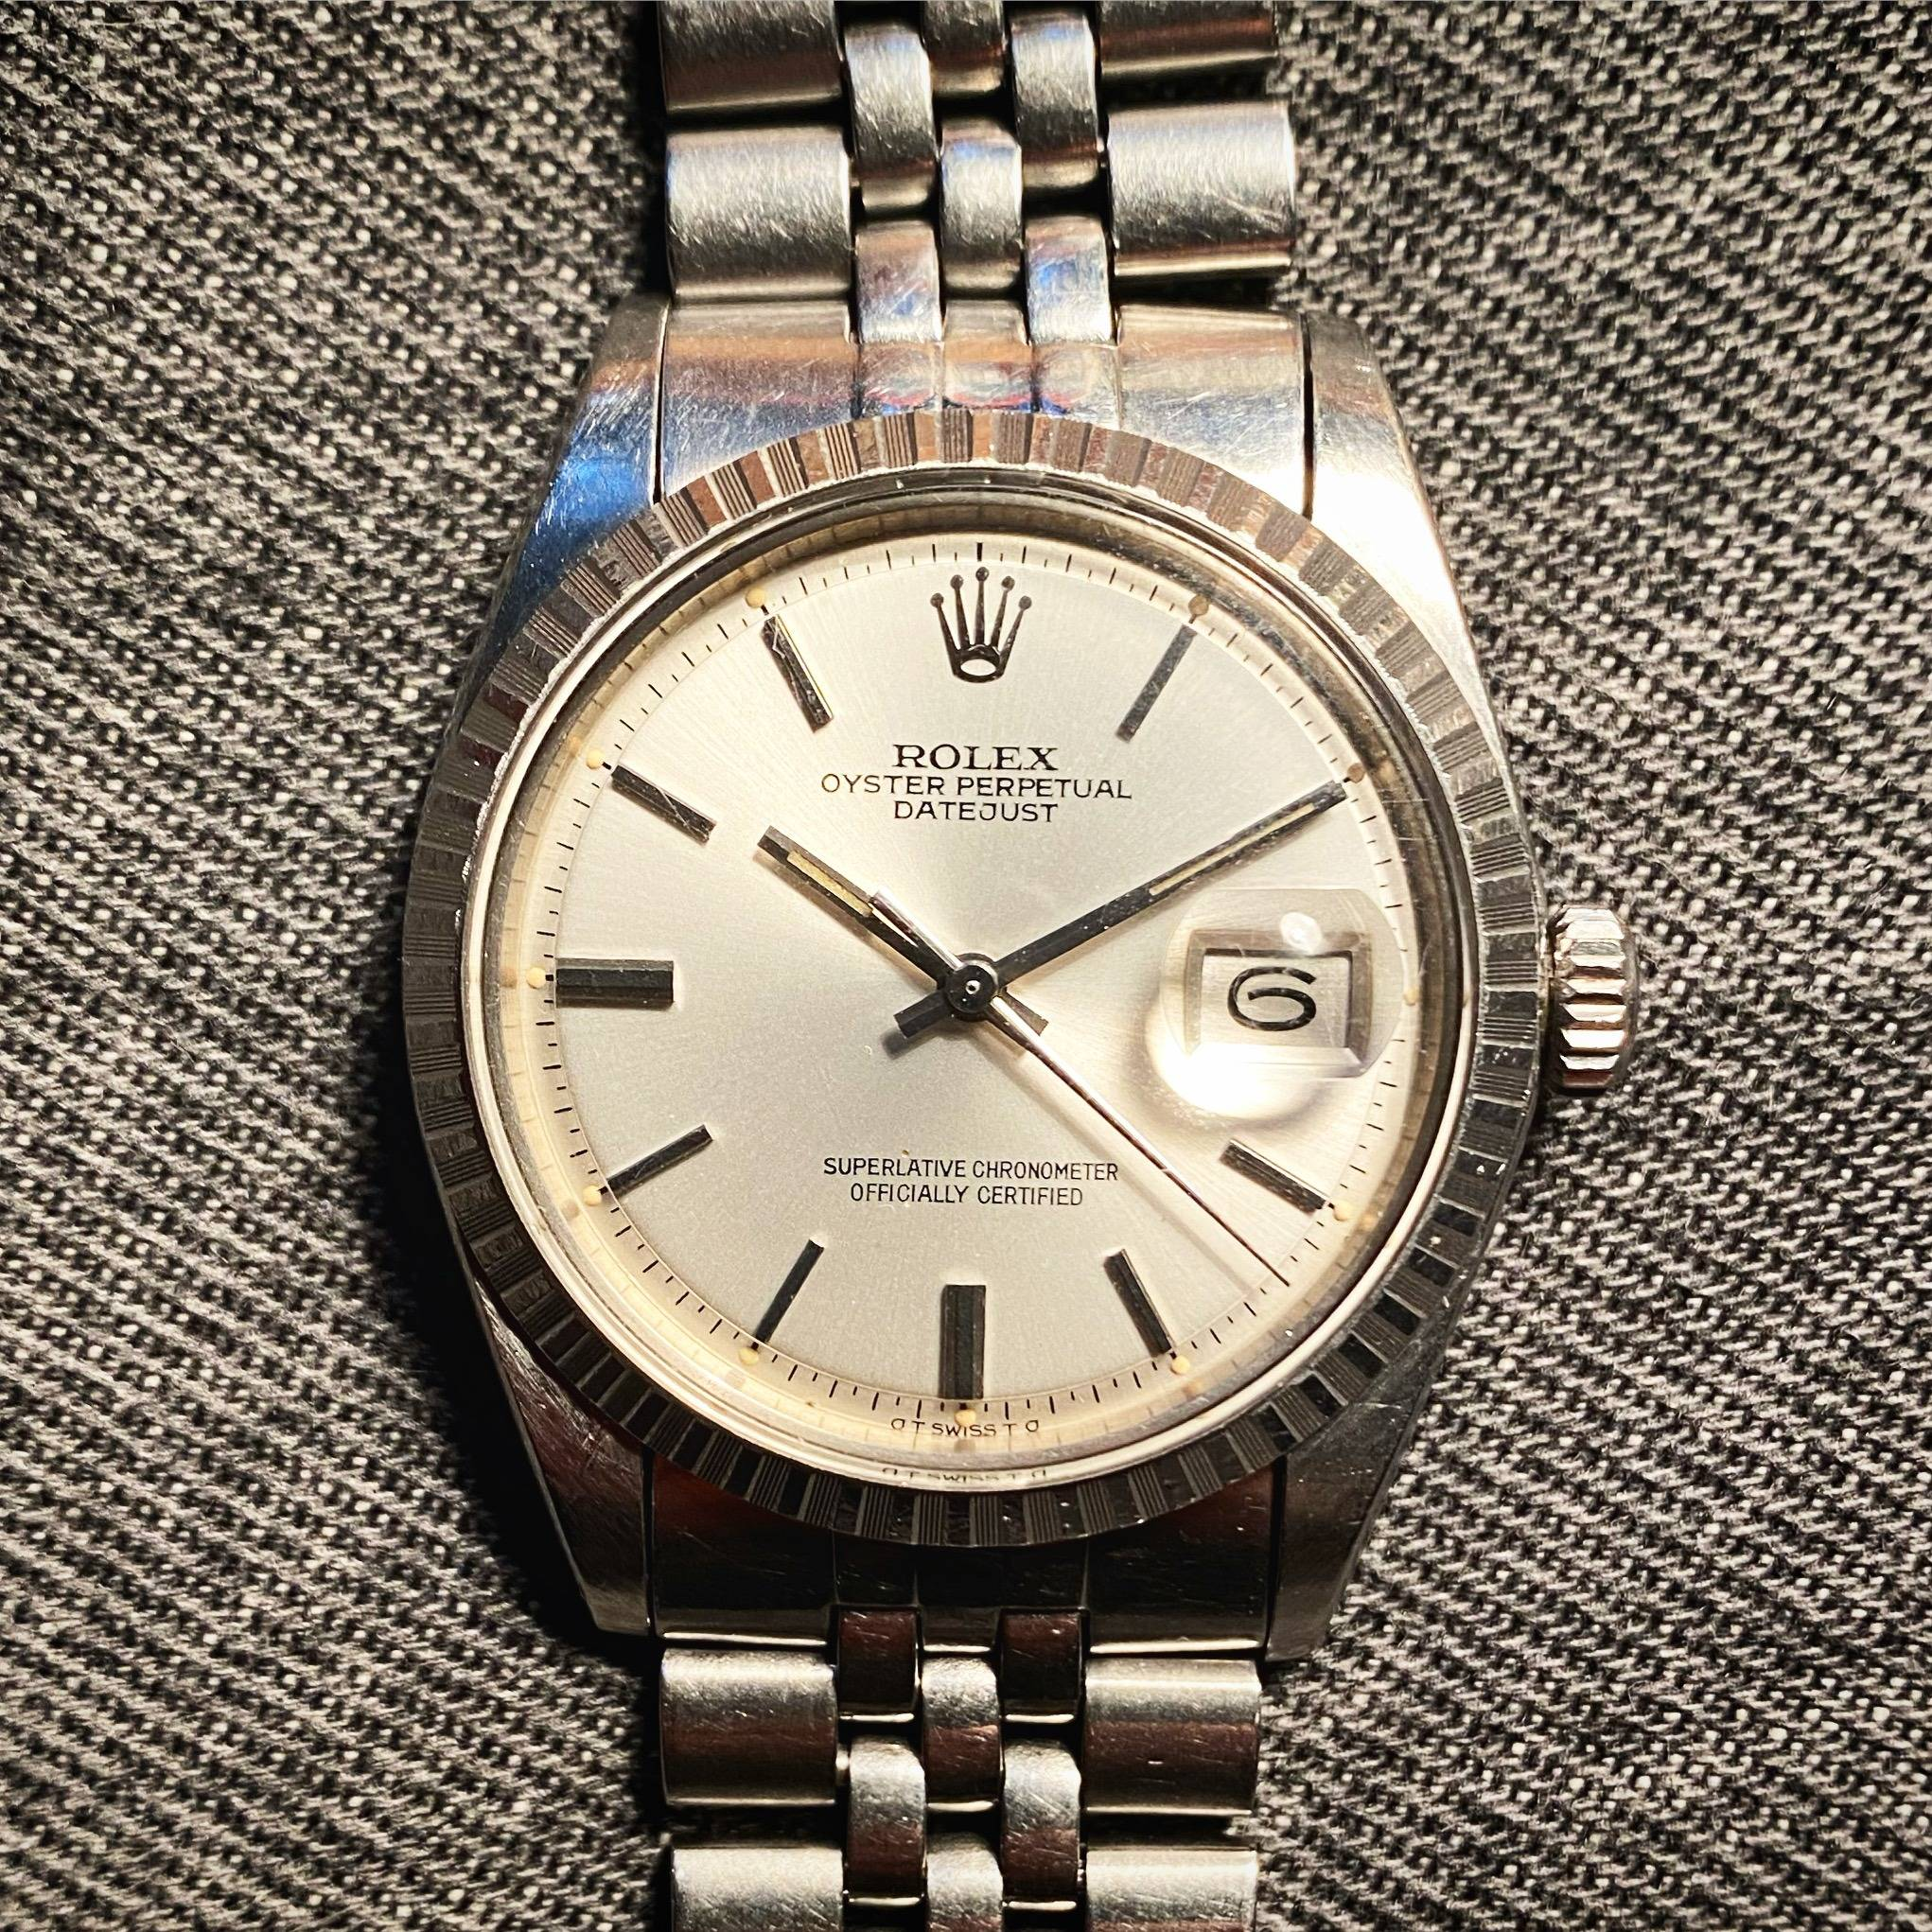 ROLEX OYSTER PERPETUAL DATEJUST ' SIGMA DIAL '